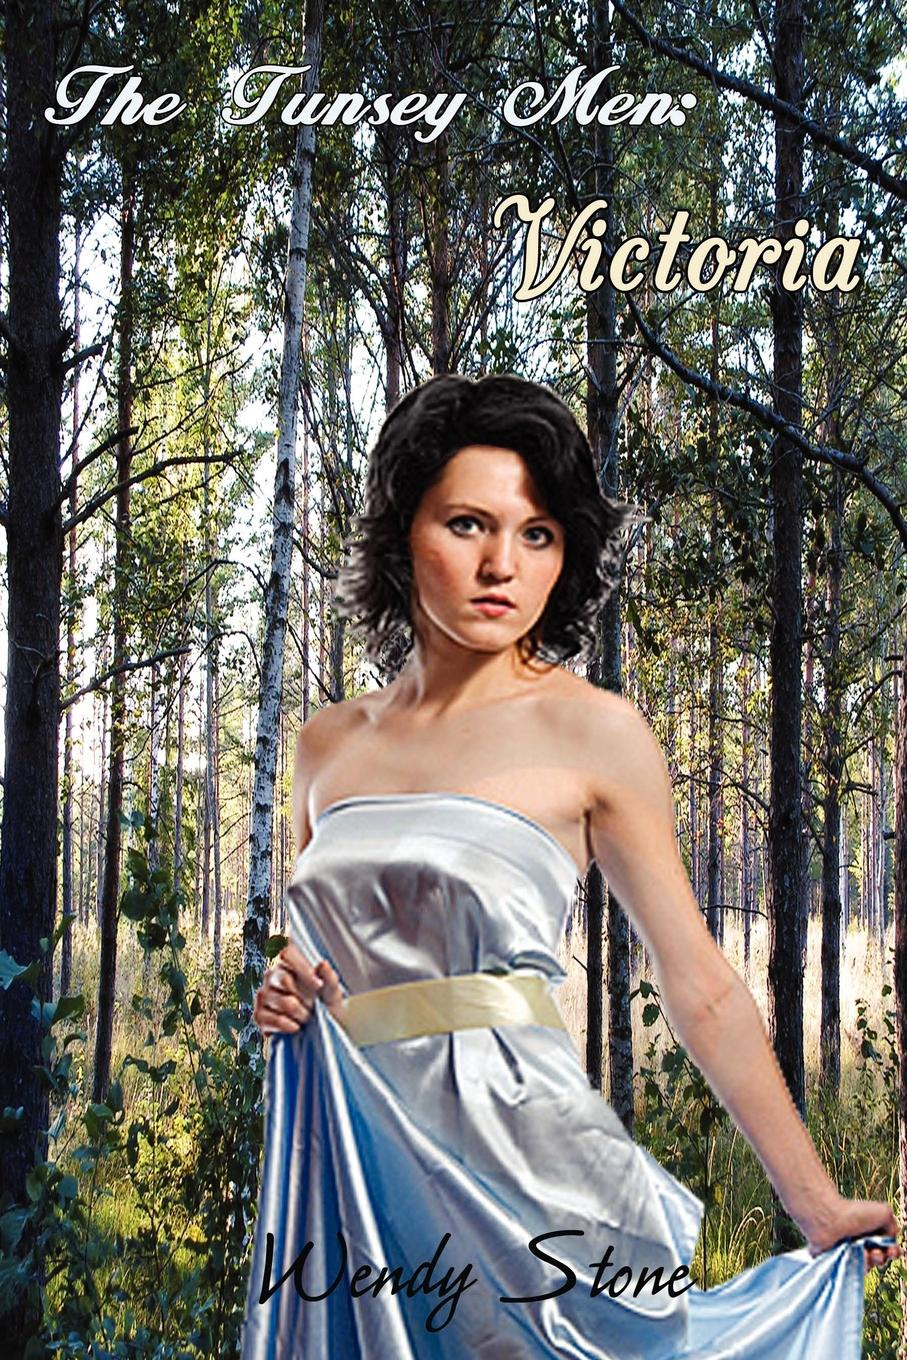 Wendy Stone The Tunsey Men 2. Victoria built by wendy dresses